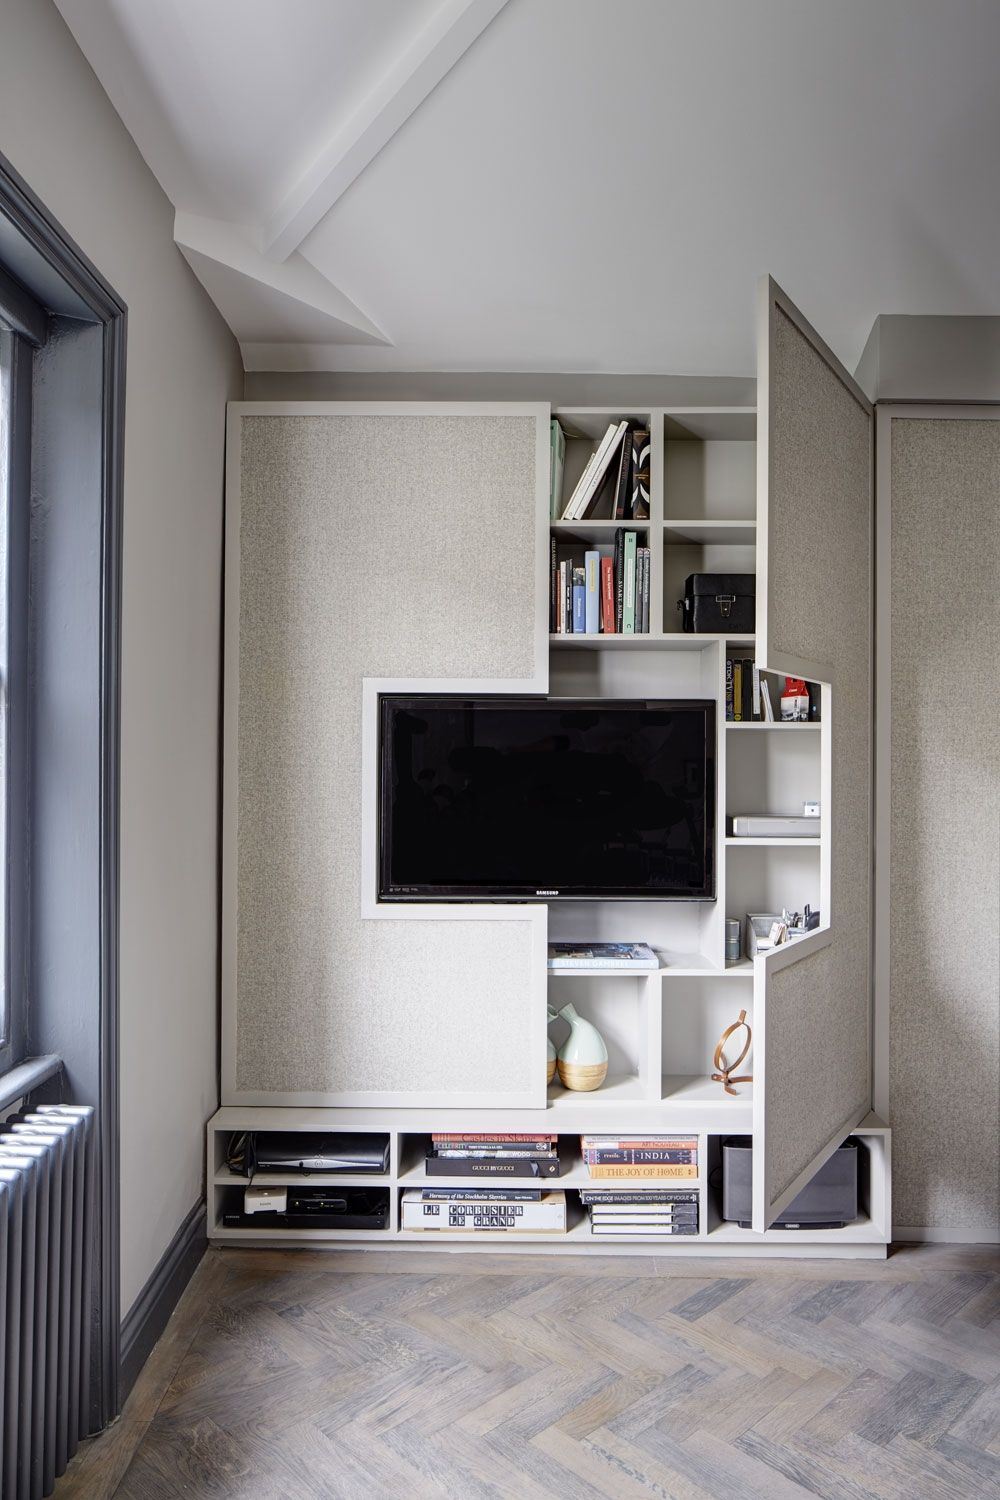 London loft apartment sigmar kindesign small office storage also high style low budget in this square foot english flat rh za pinterest